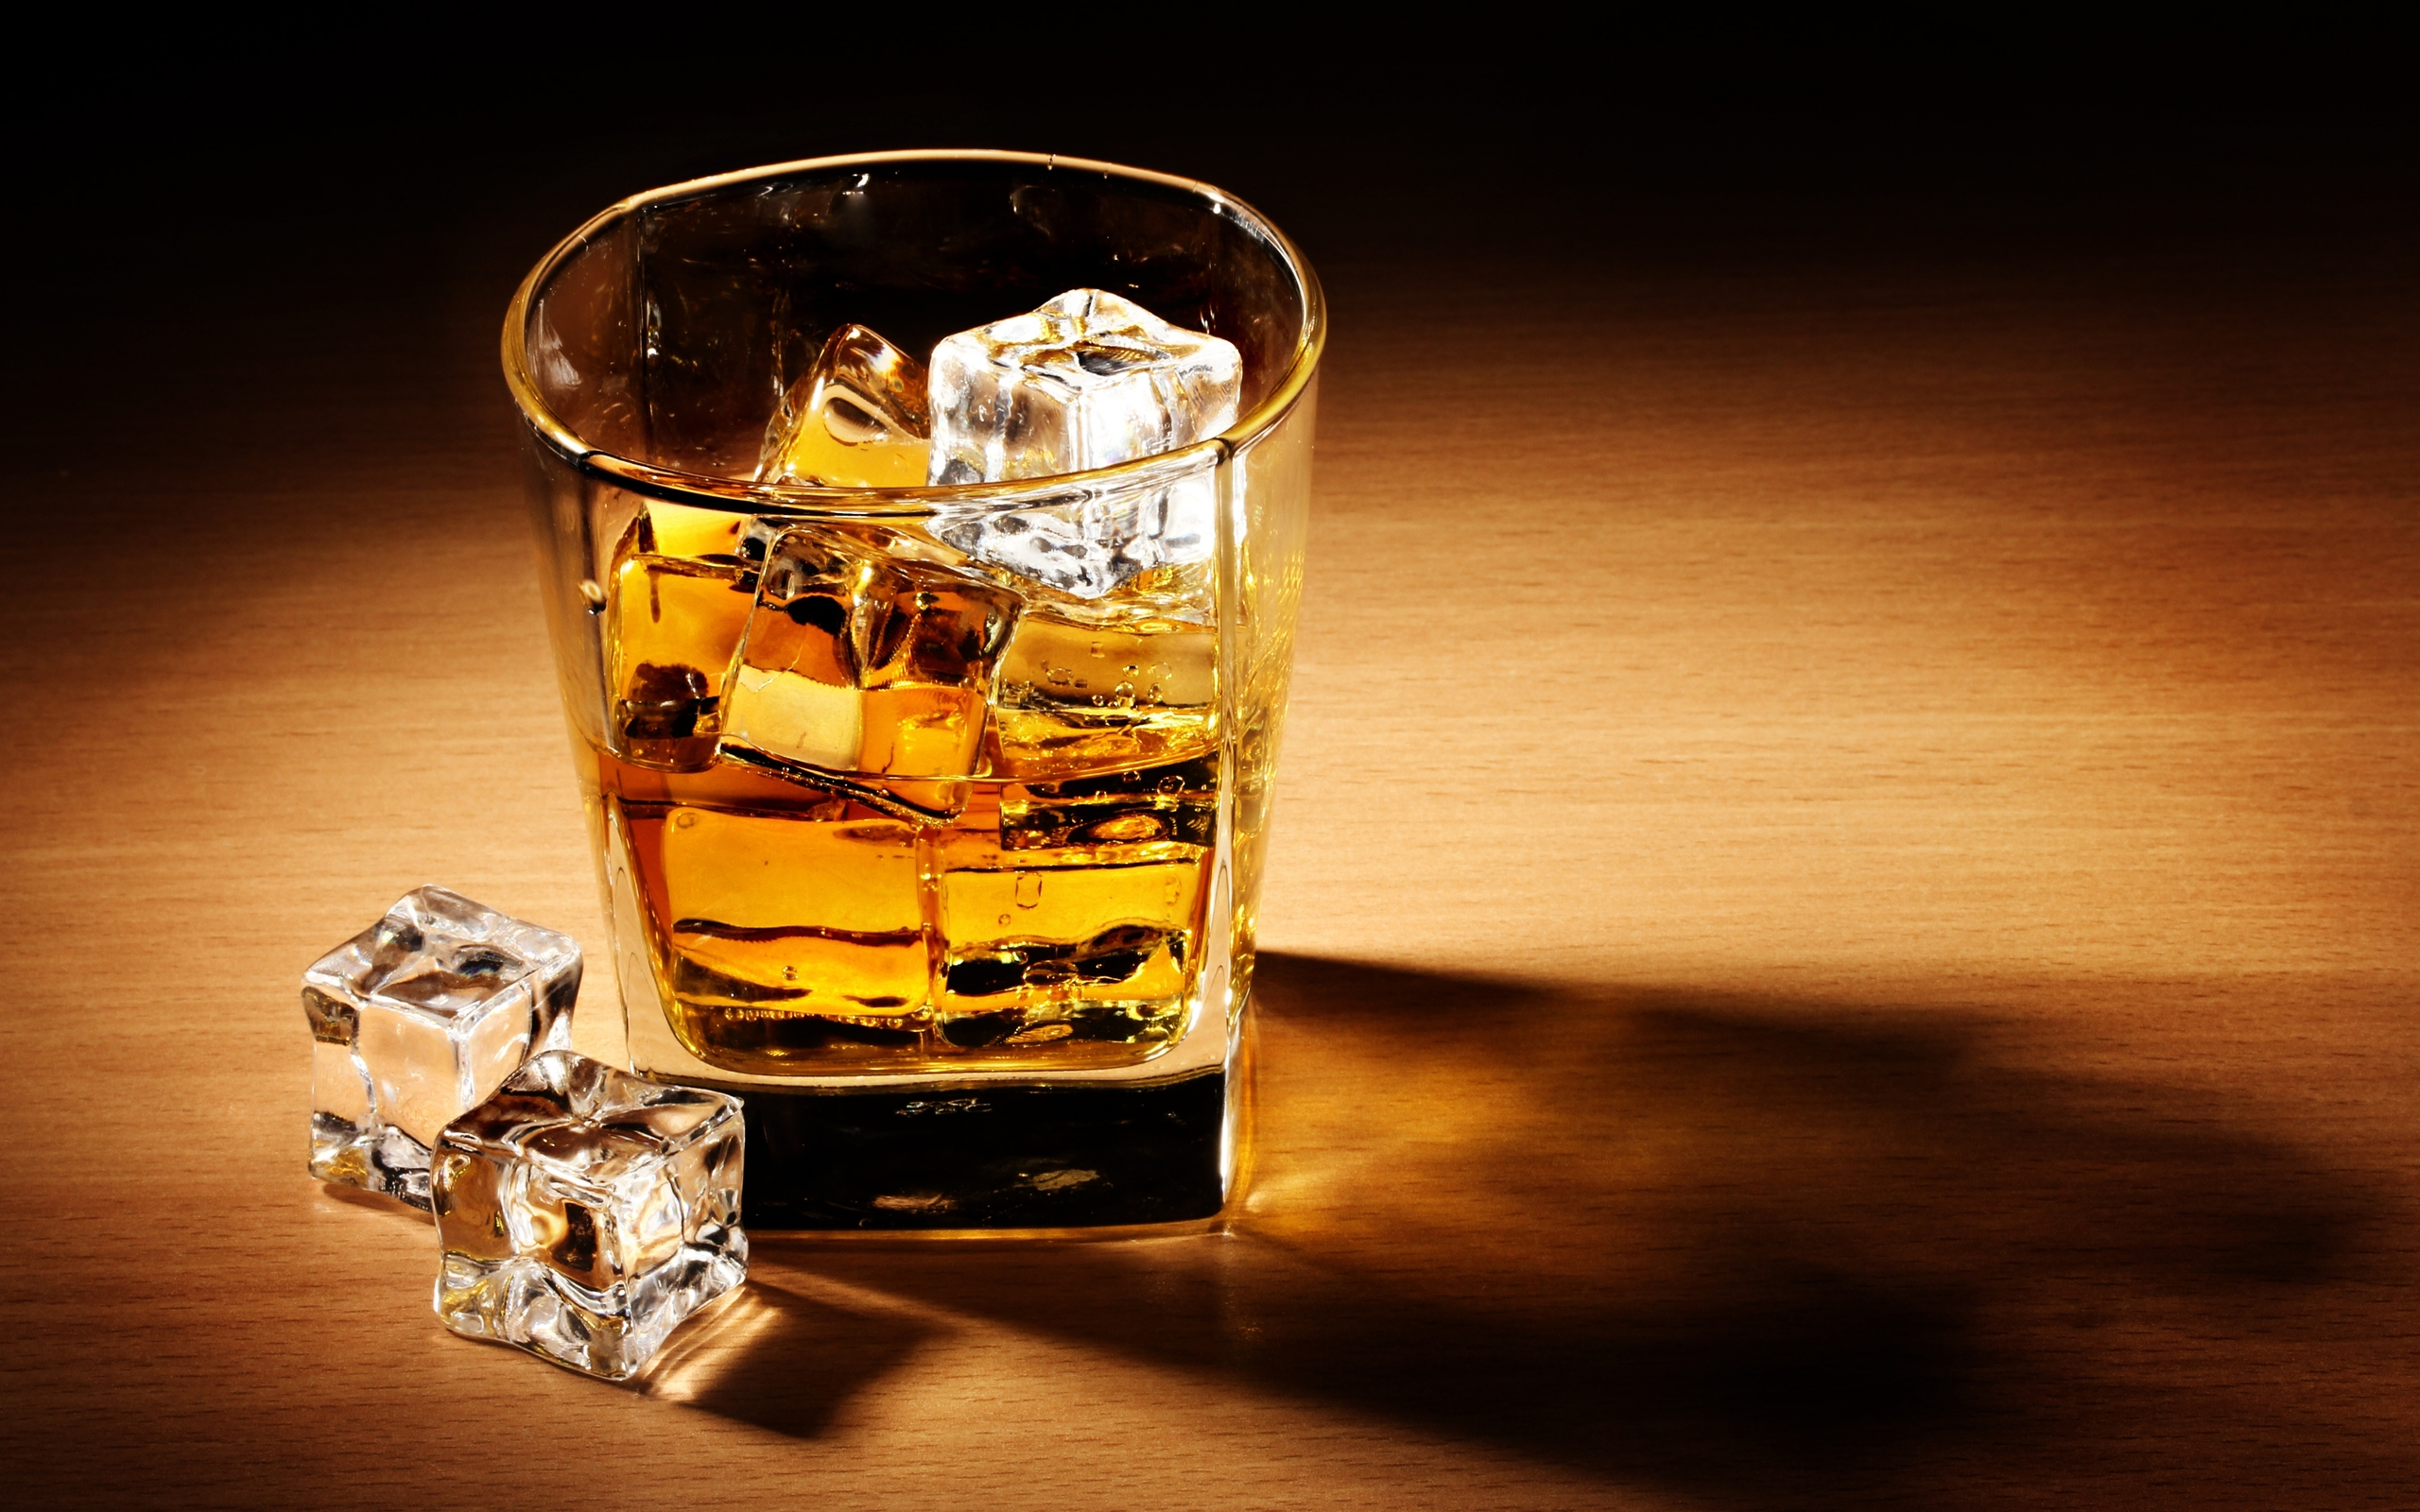 whisky-wallpaper-1.jpg